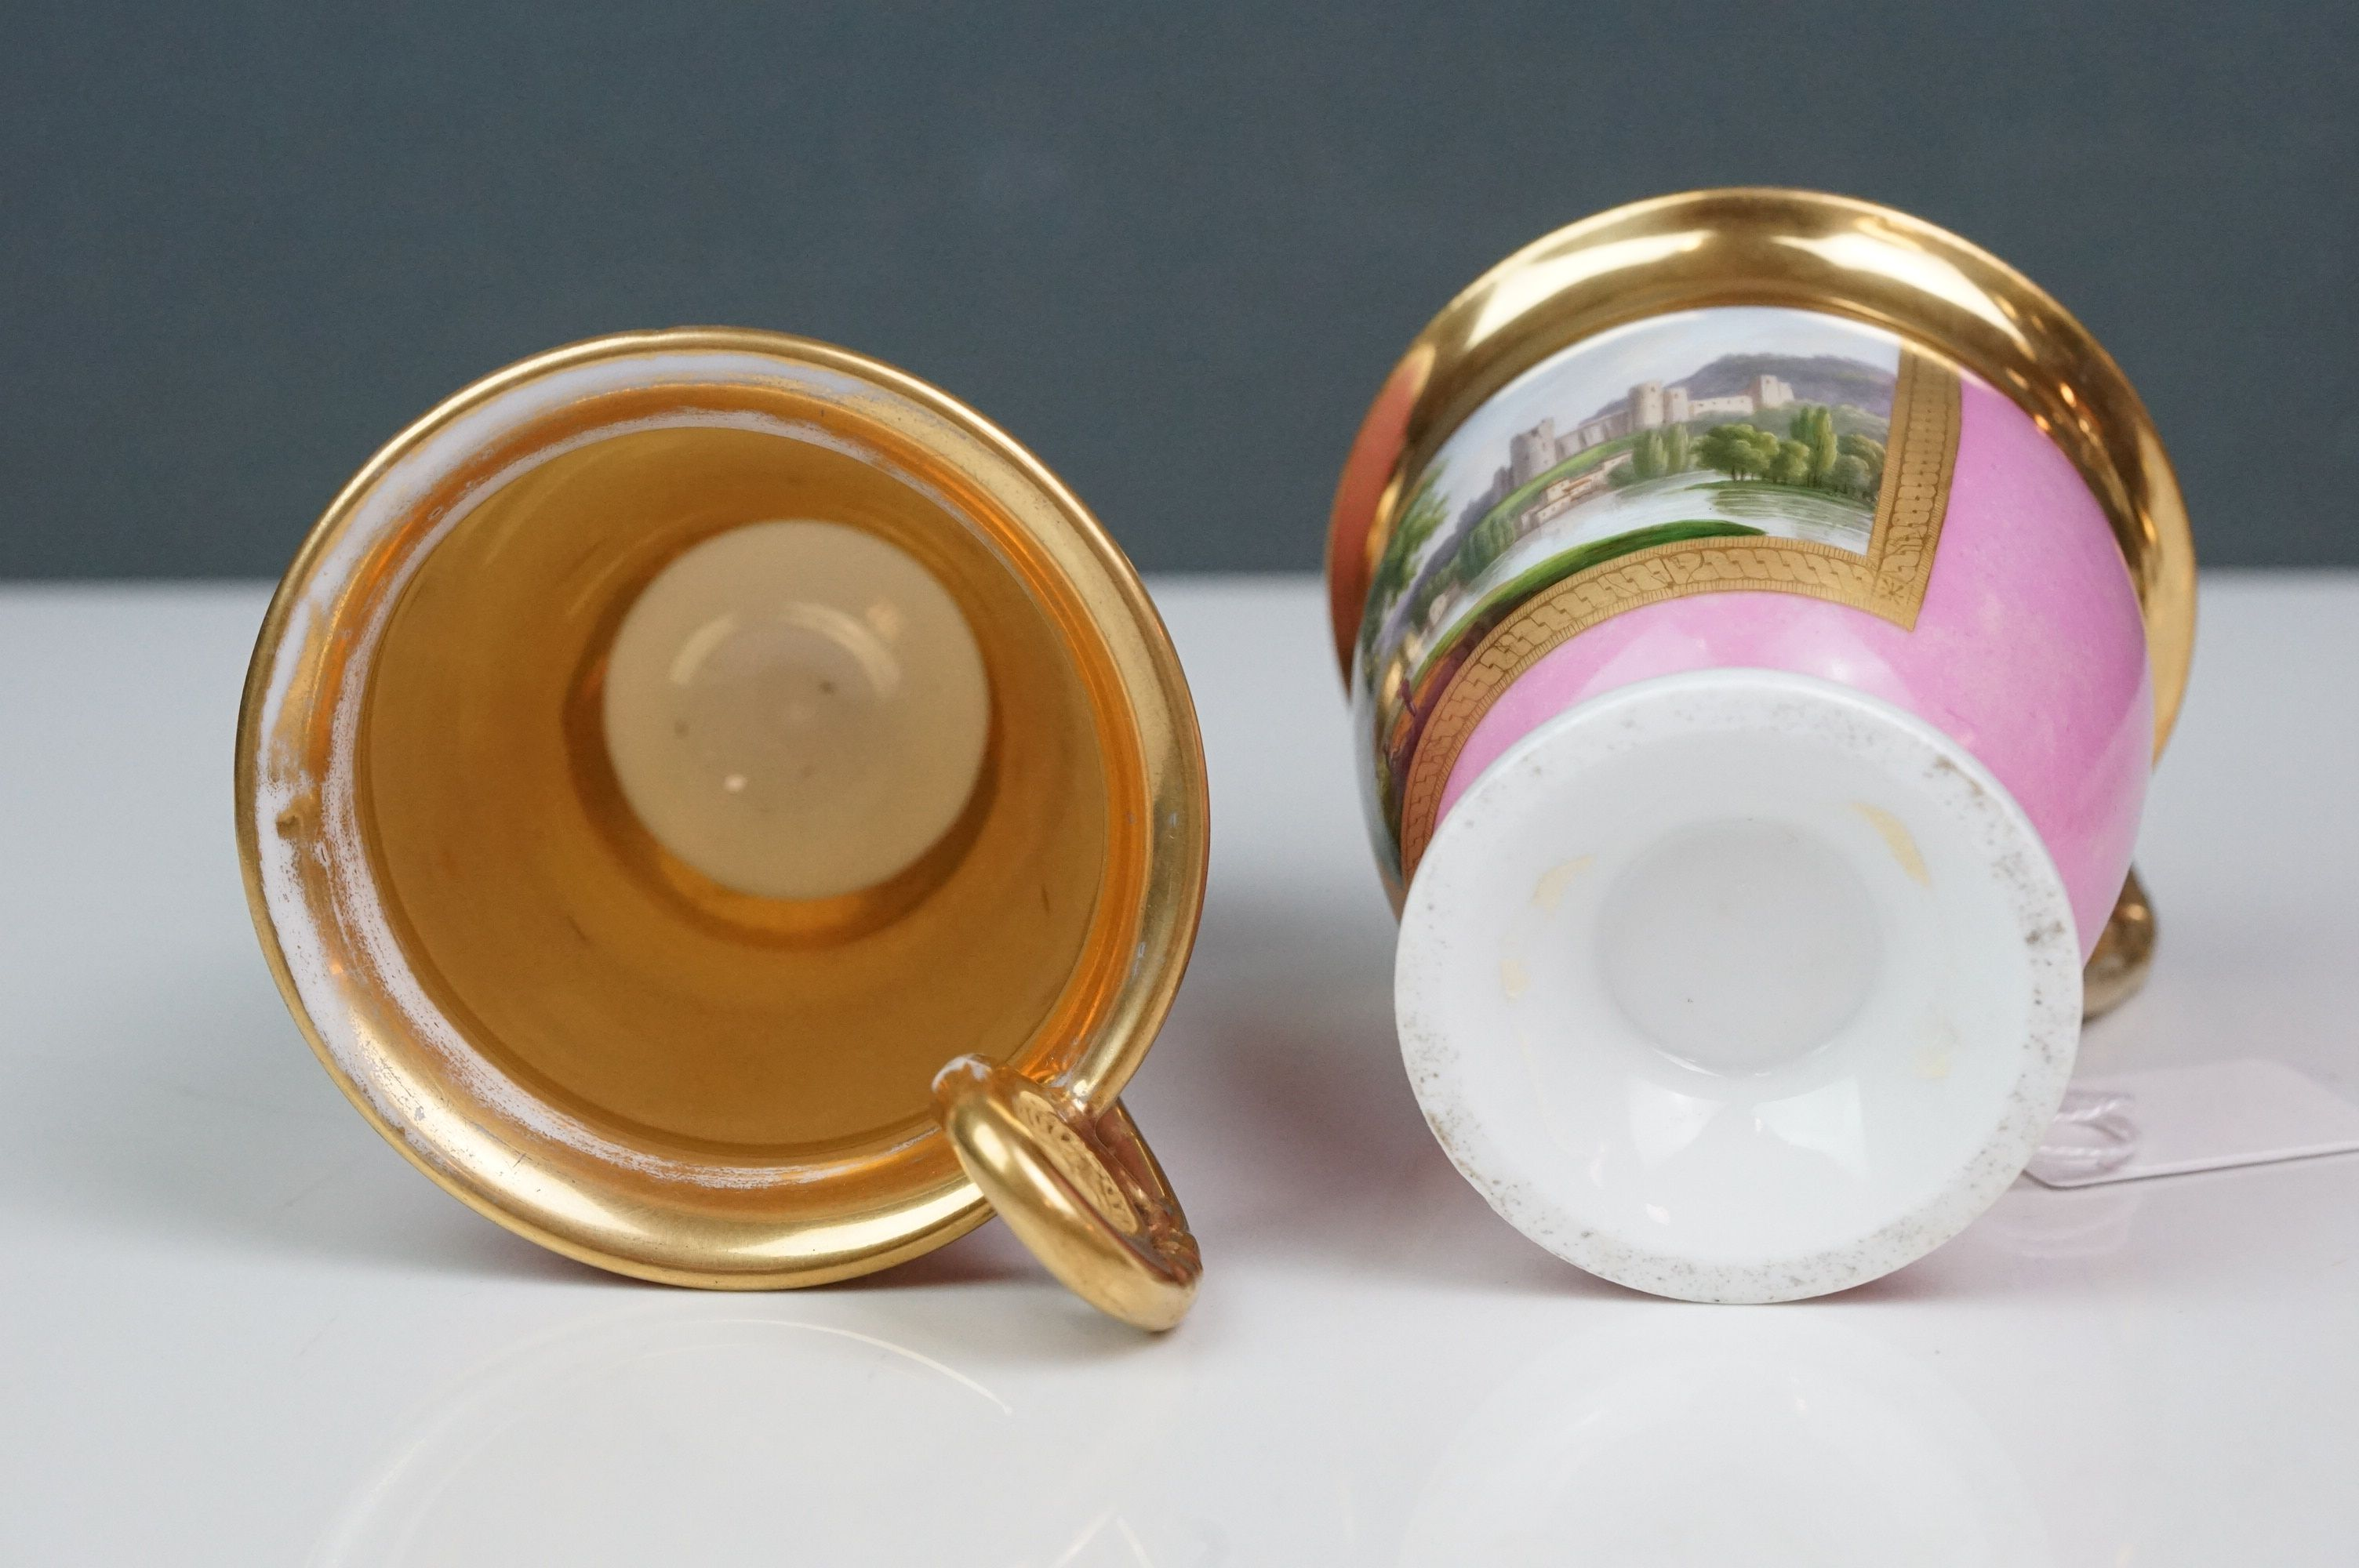 Pair of hand painted Dresden cups, each depicting a different scene: castle and lake scene with - Image 6 of 10